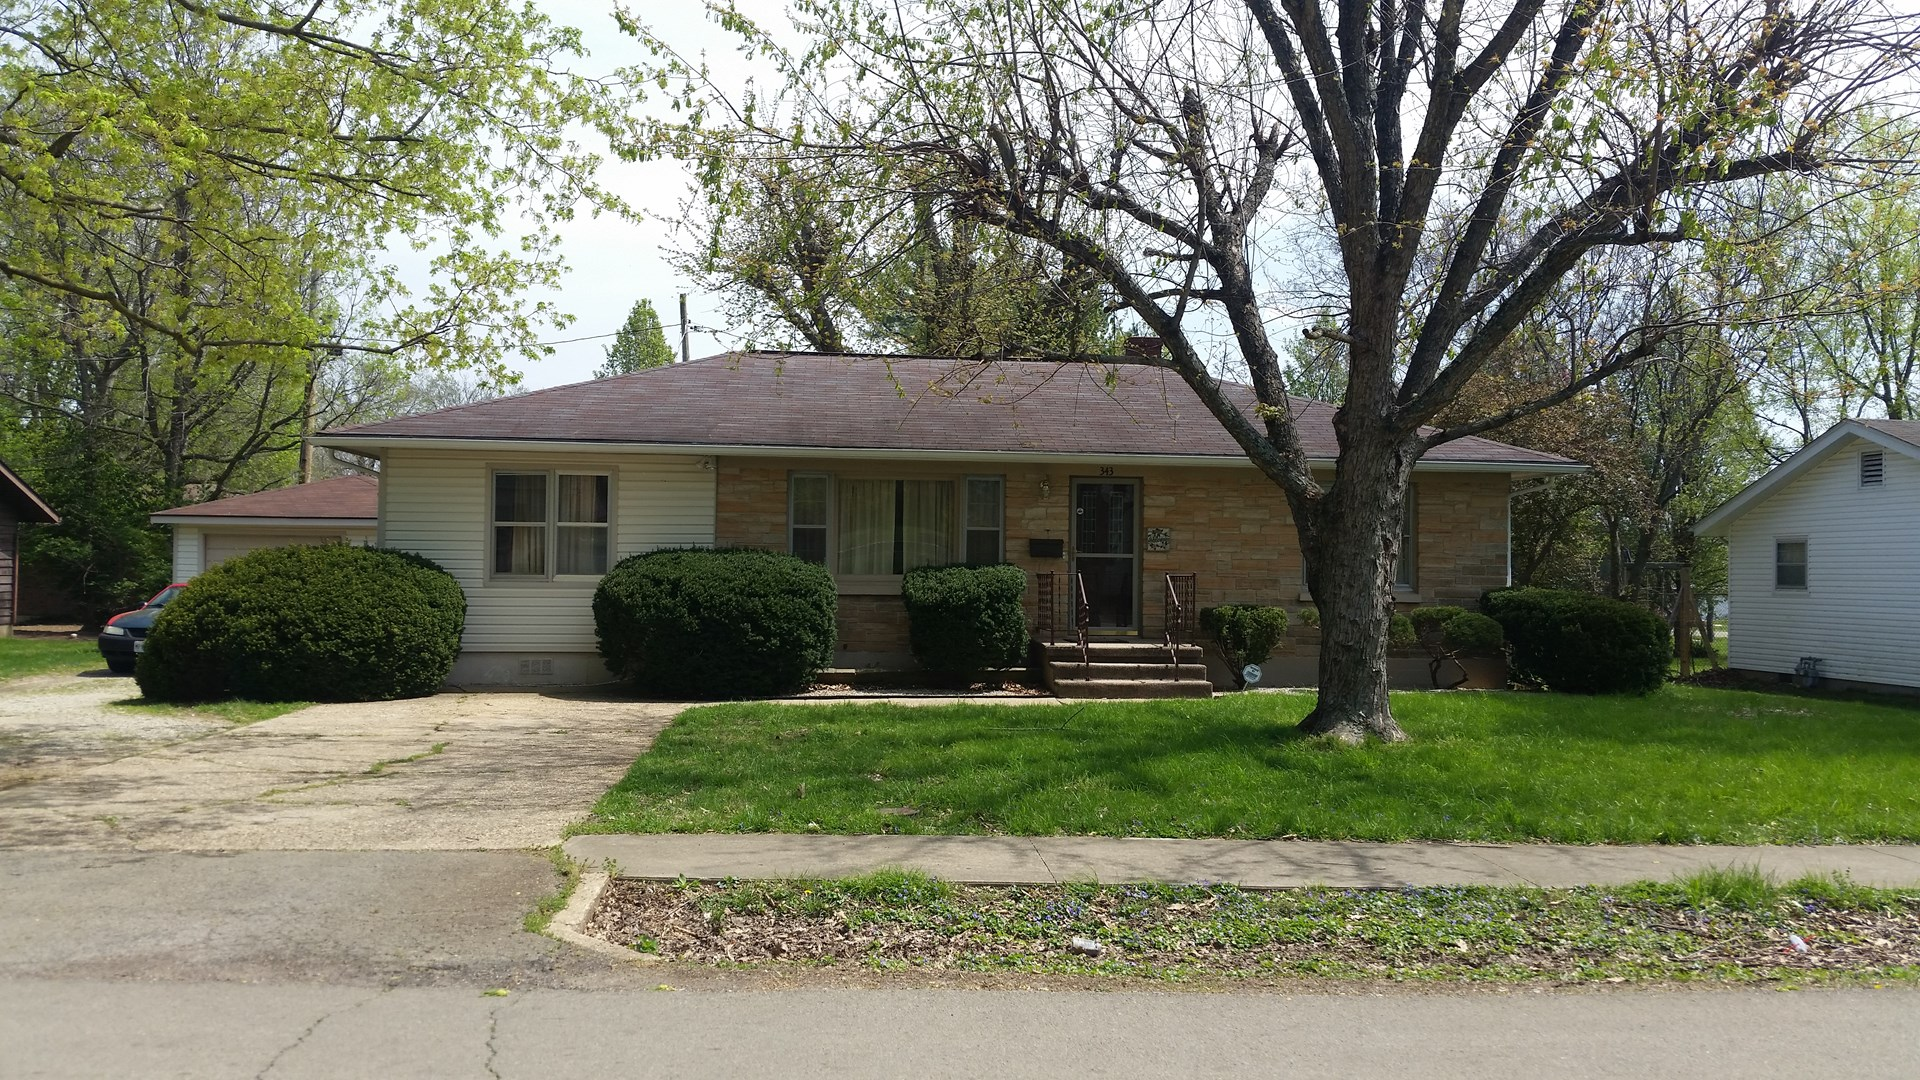 For sale: Nice 2 bedroom 1 bath home in town